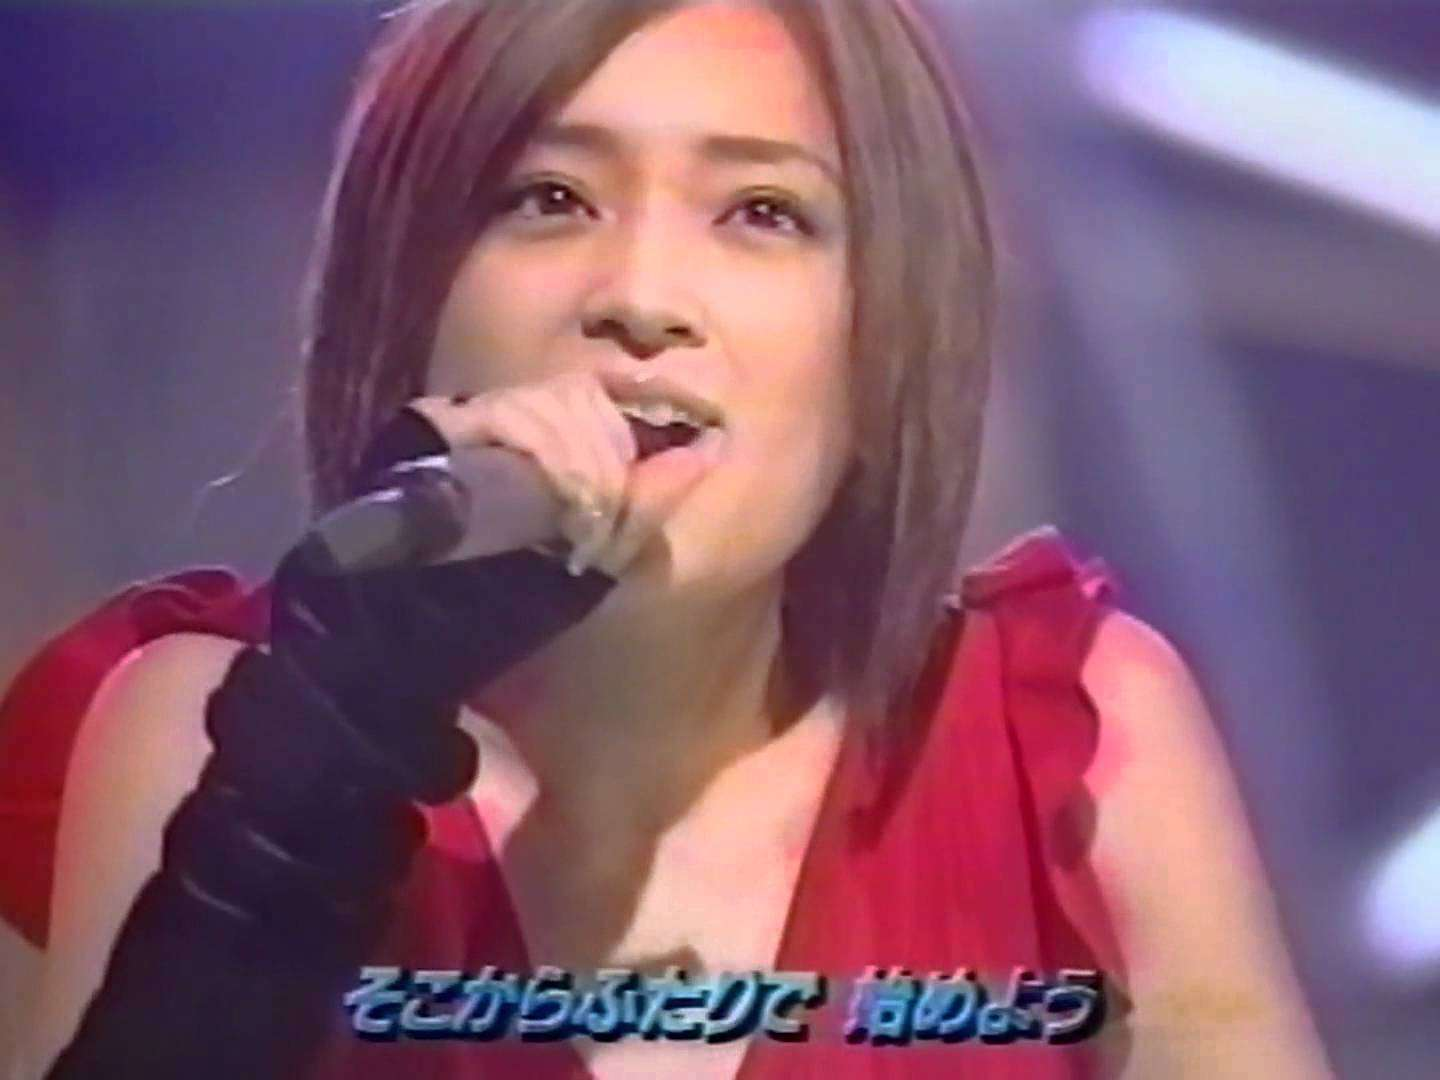 浜崎あゆみ Depend on you 1998-12-30 - YouTube